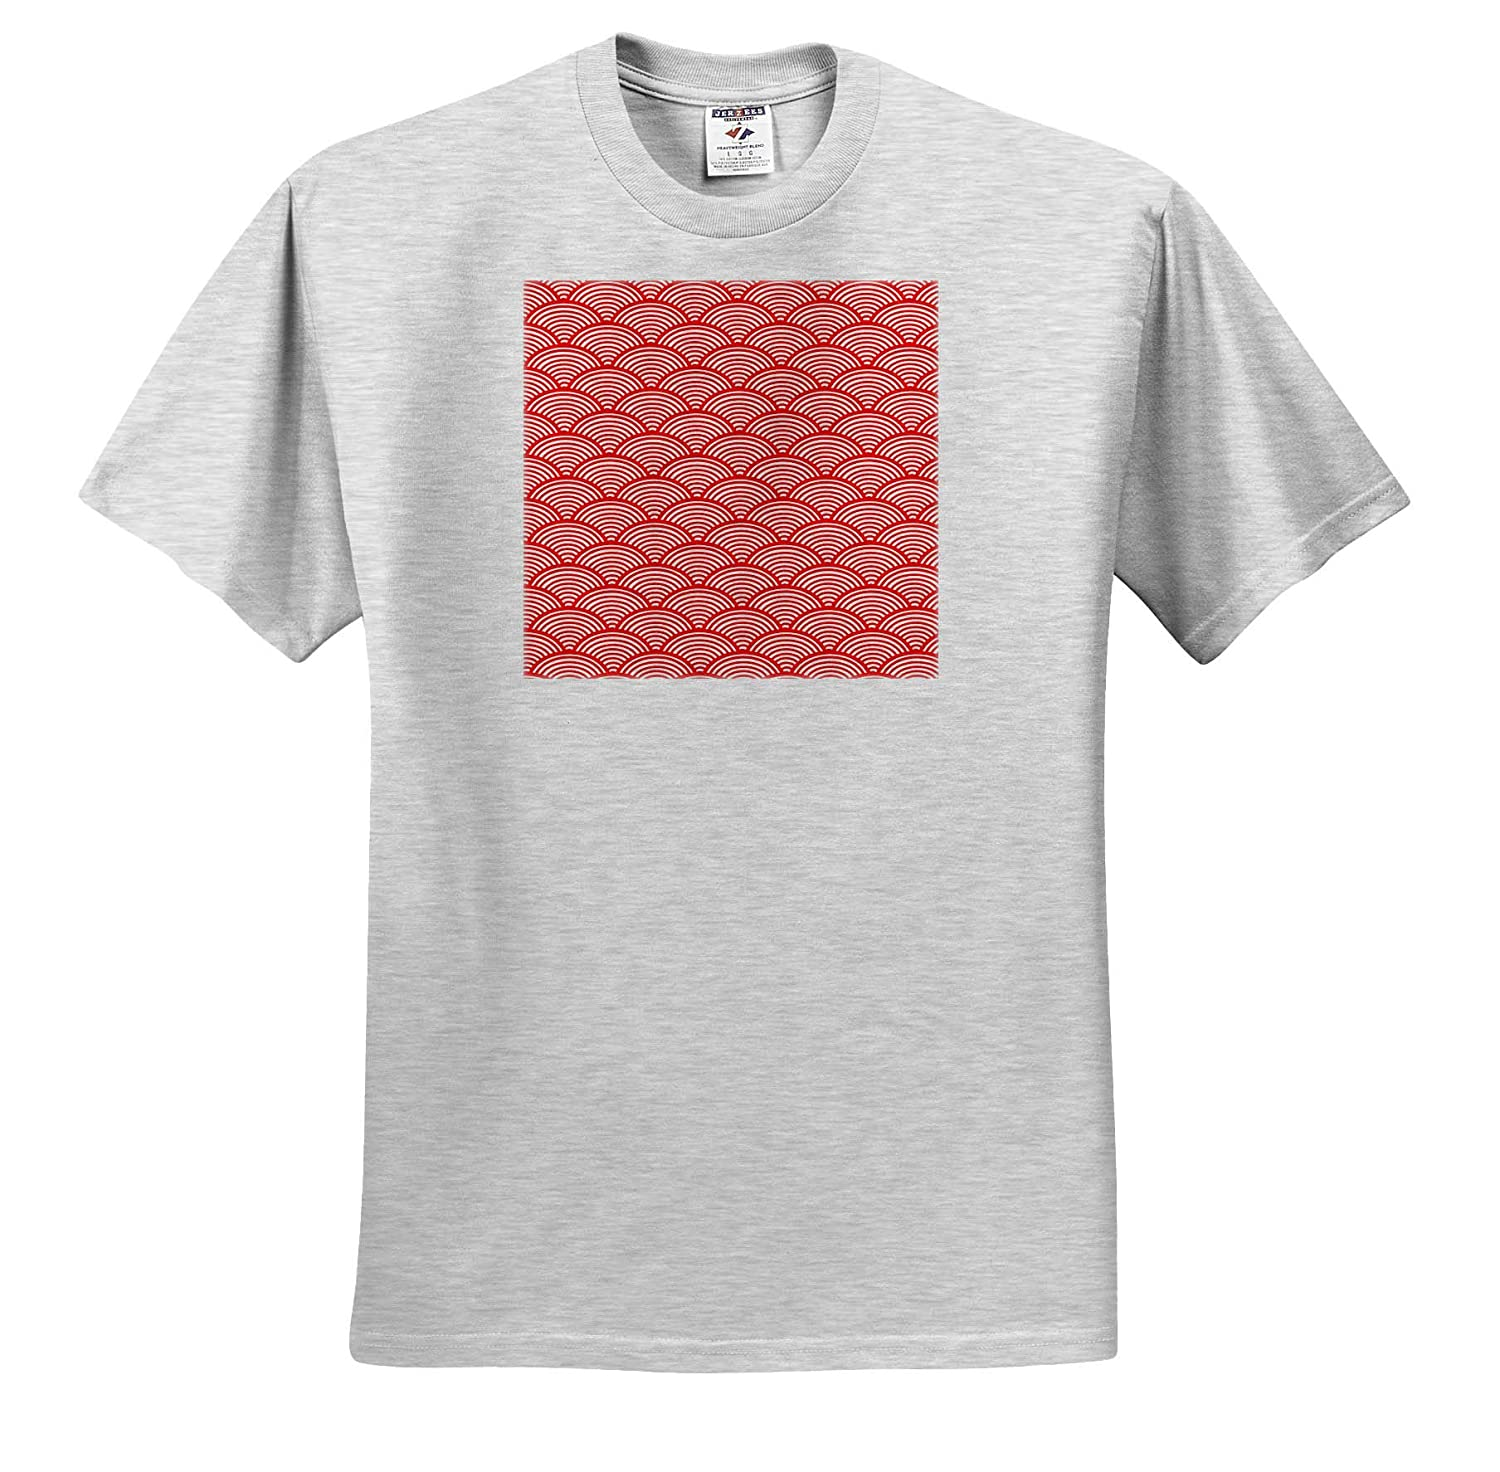 ts/_320008 Pattern Geometrical Adult T-Shirt XL 3dRose Alexis Design Image of red Geometric Wave or Scale Pattern